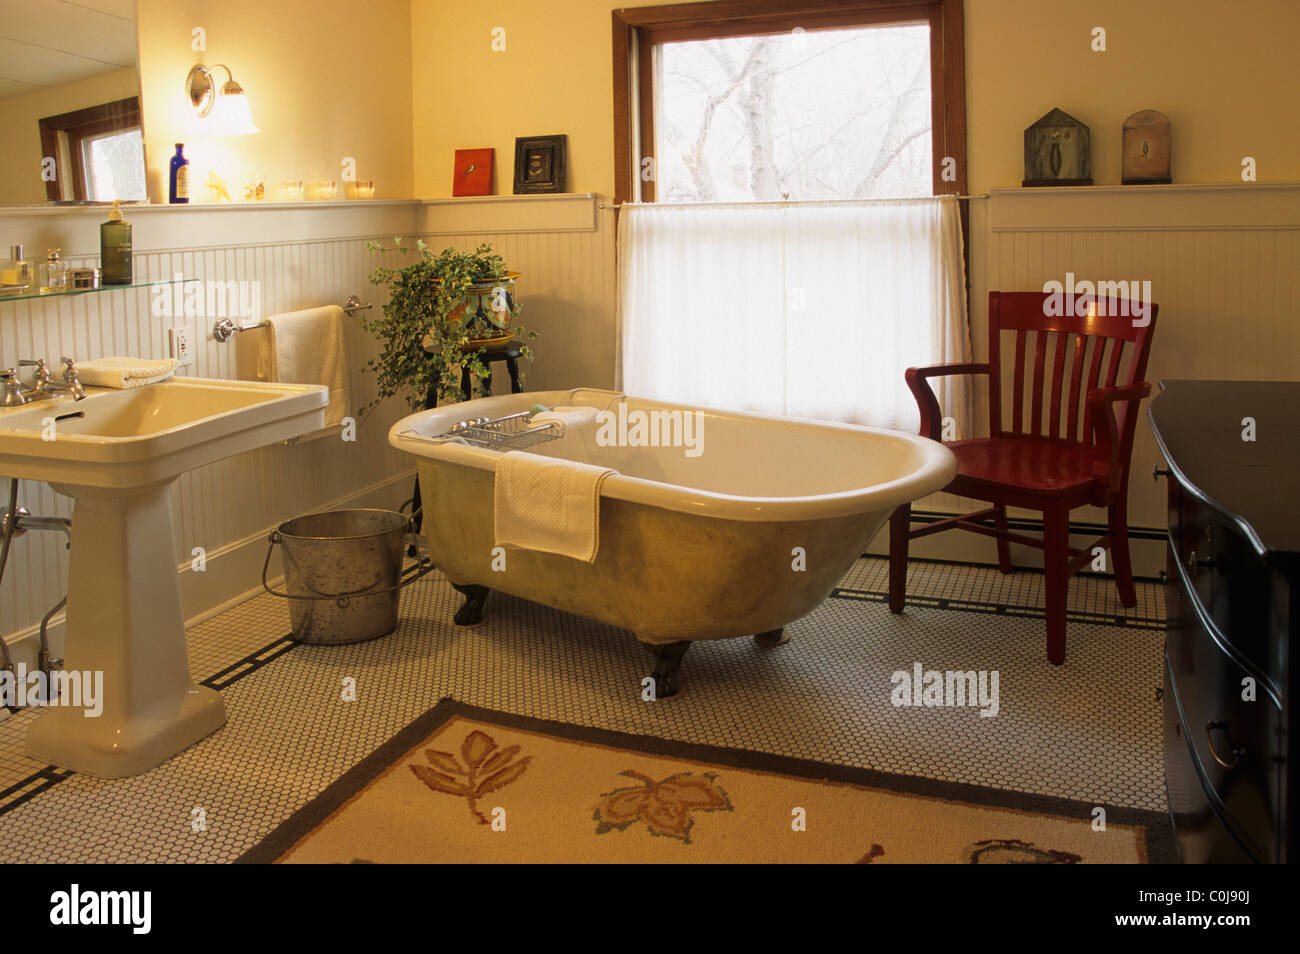 Old Fashioned Cast Iron Clawfoot Bathtub And Pedestal Sink In Stock Photo Alamy